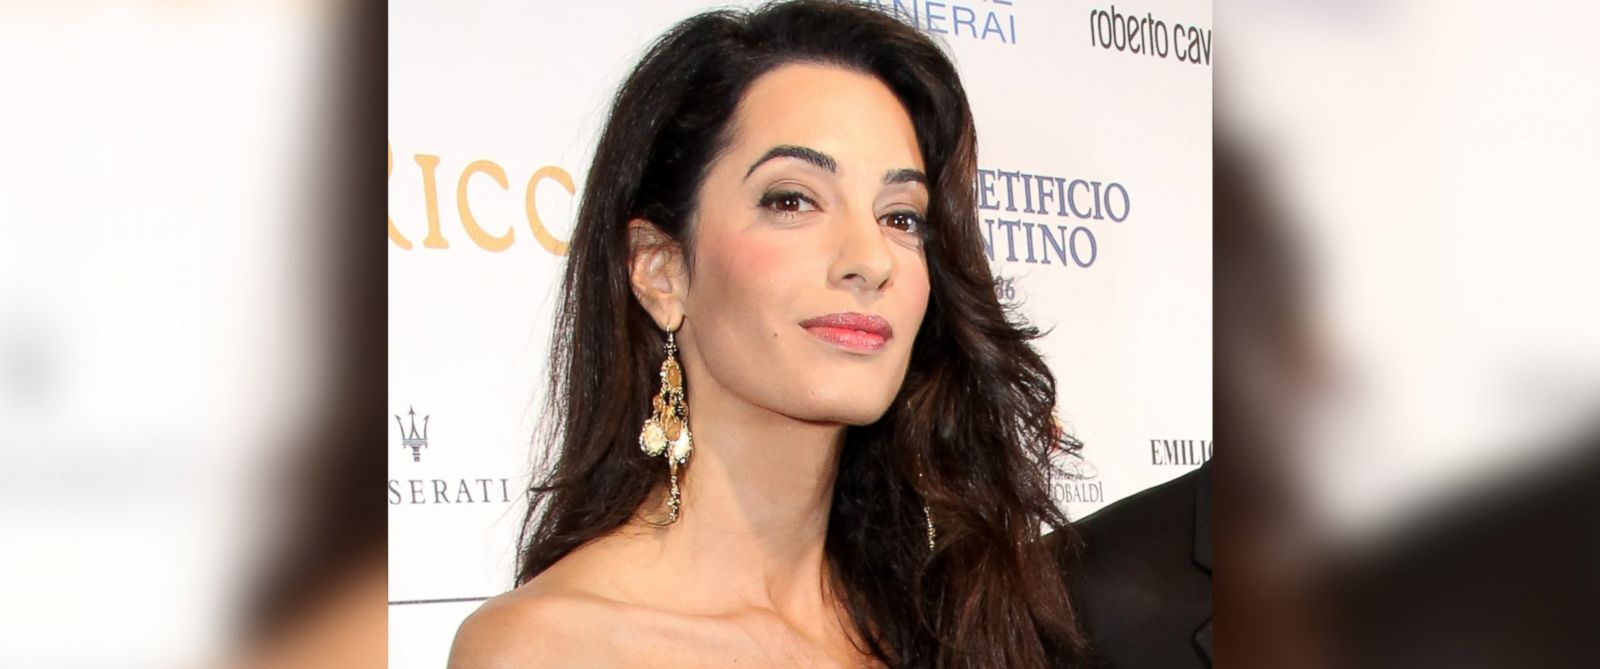 PHOTO: Amal Alamuddin attends a benefit on Sept. 7, 2014 in Florence, Italy.